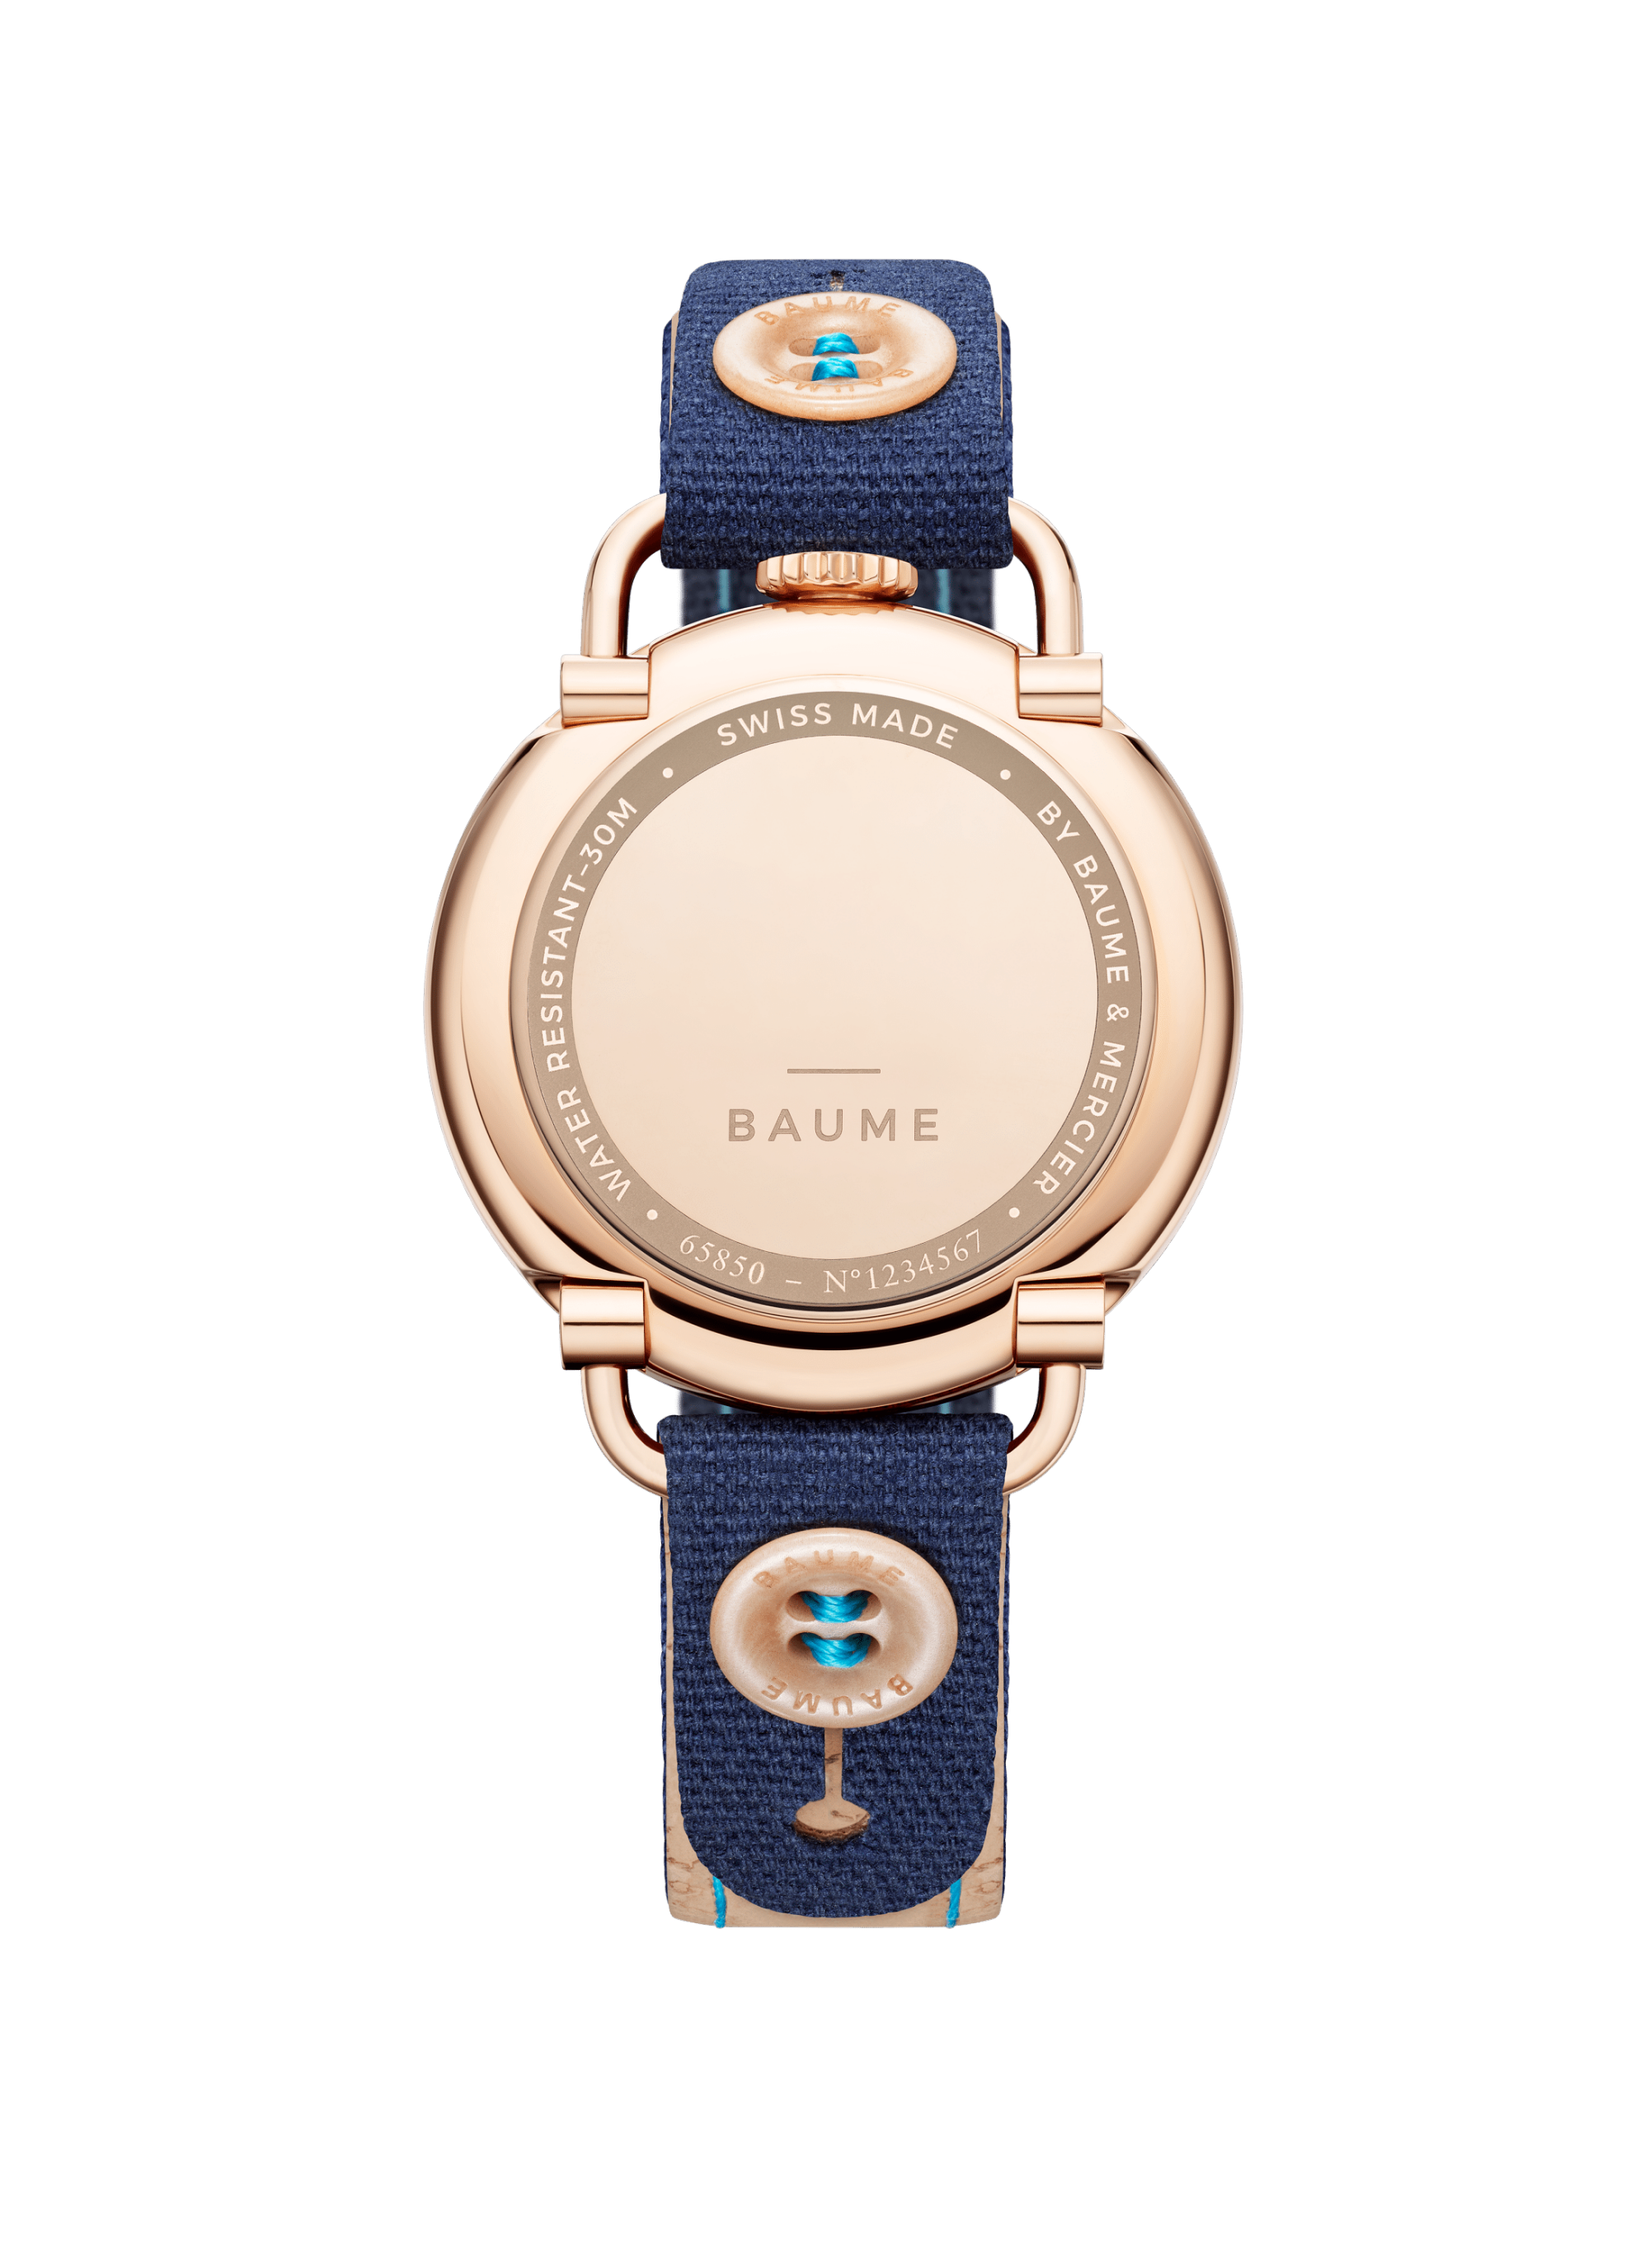 Baume 10603 Watch for ladies | Check Prices on Baume & Mercier Back -